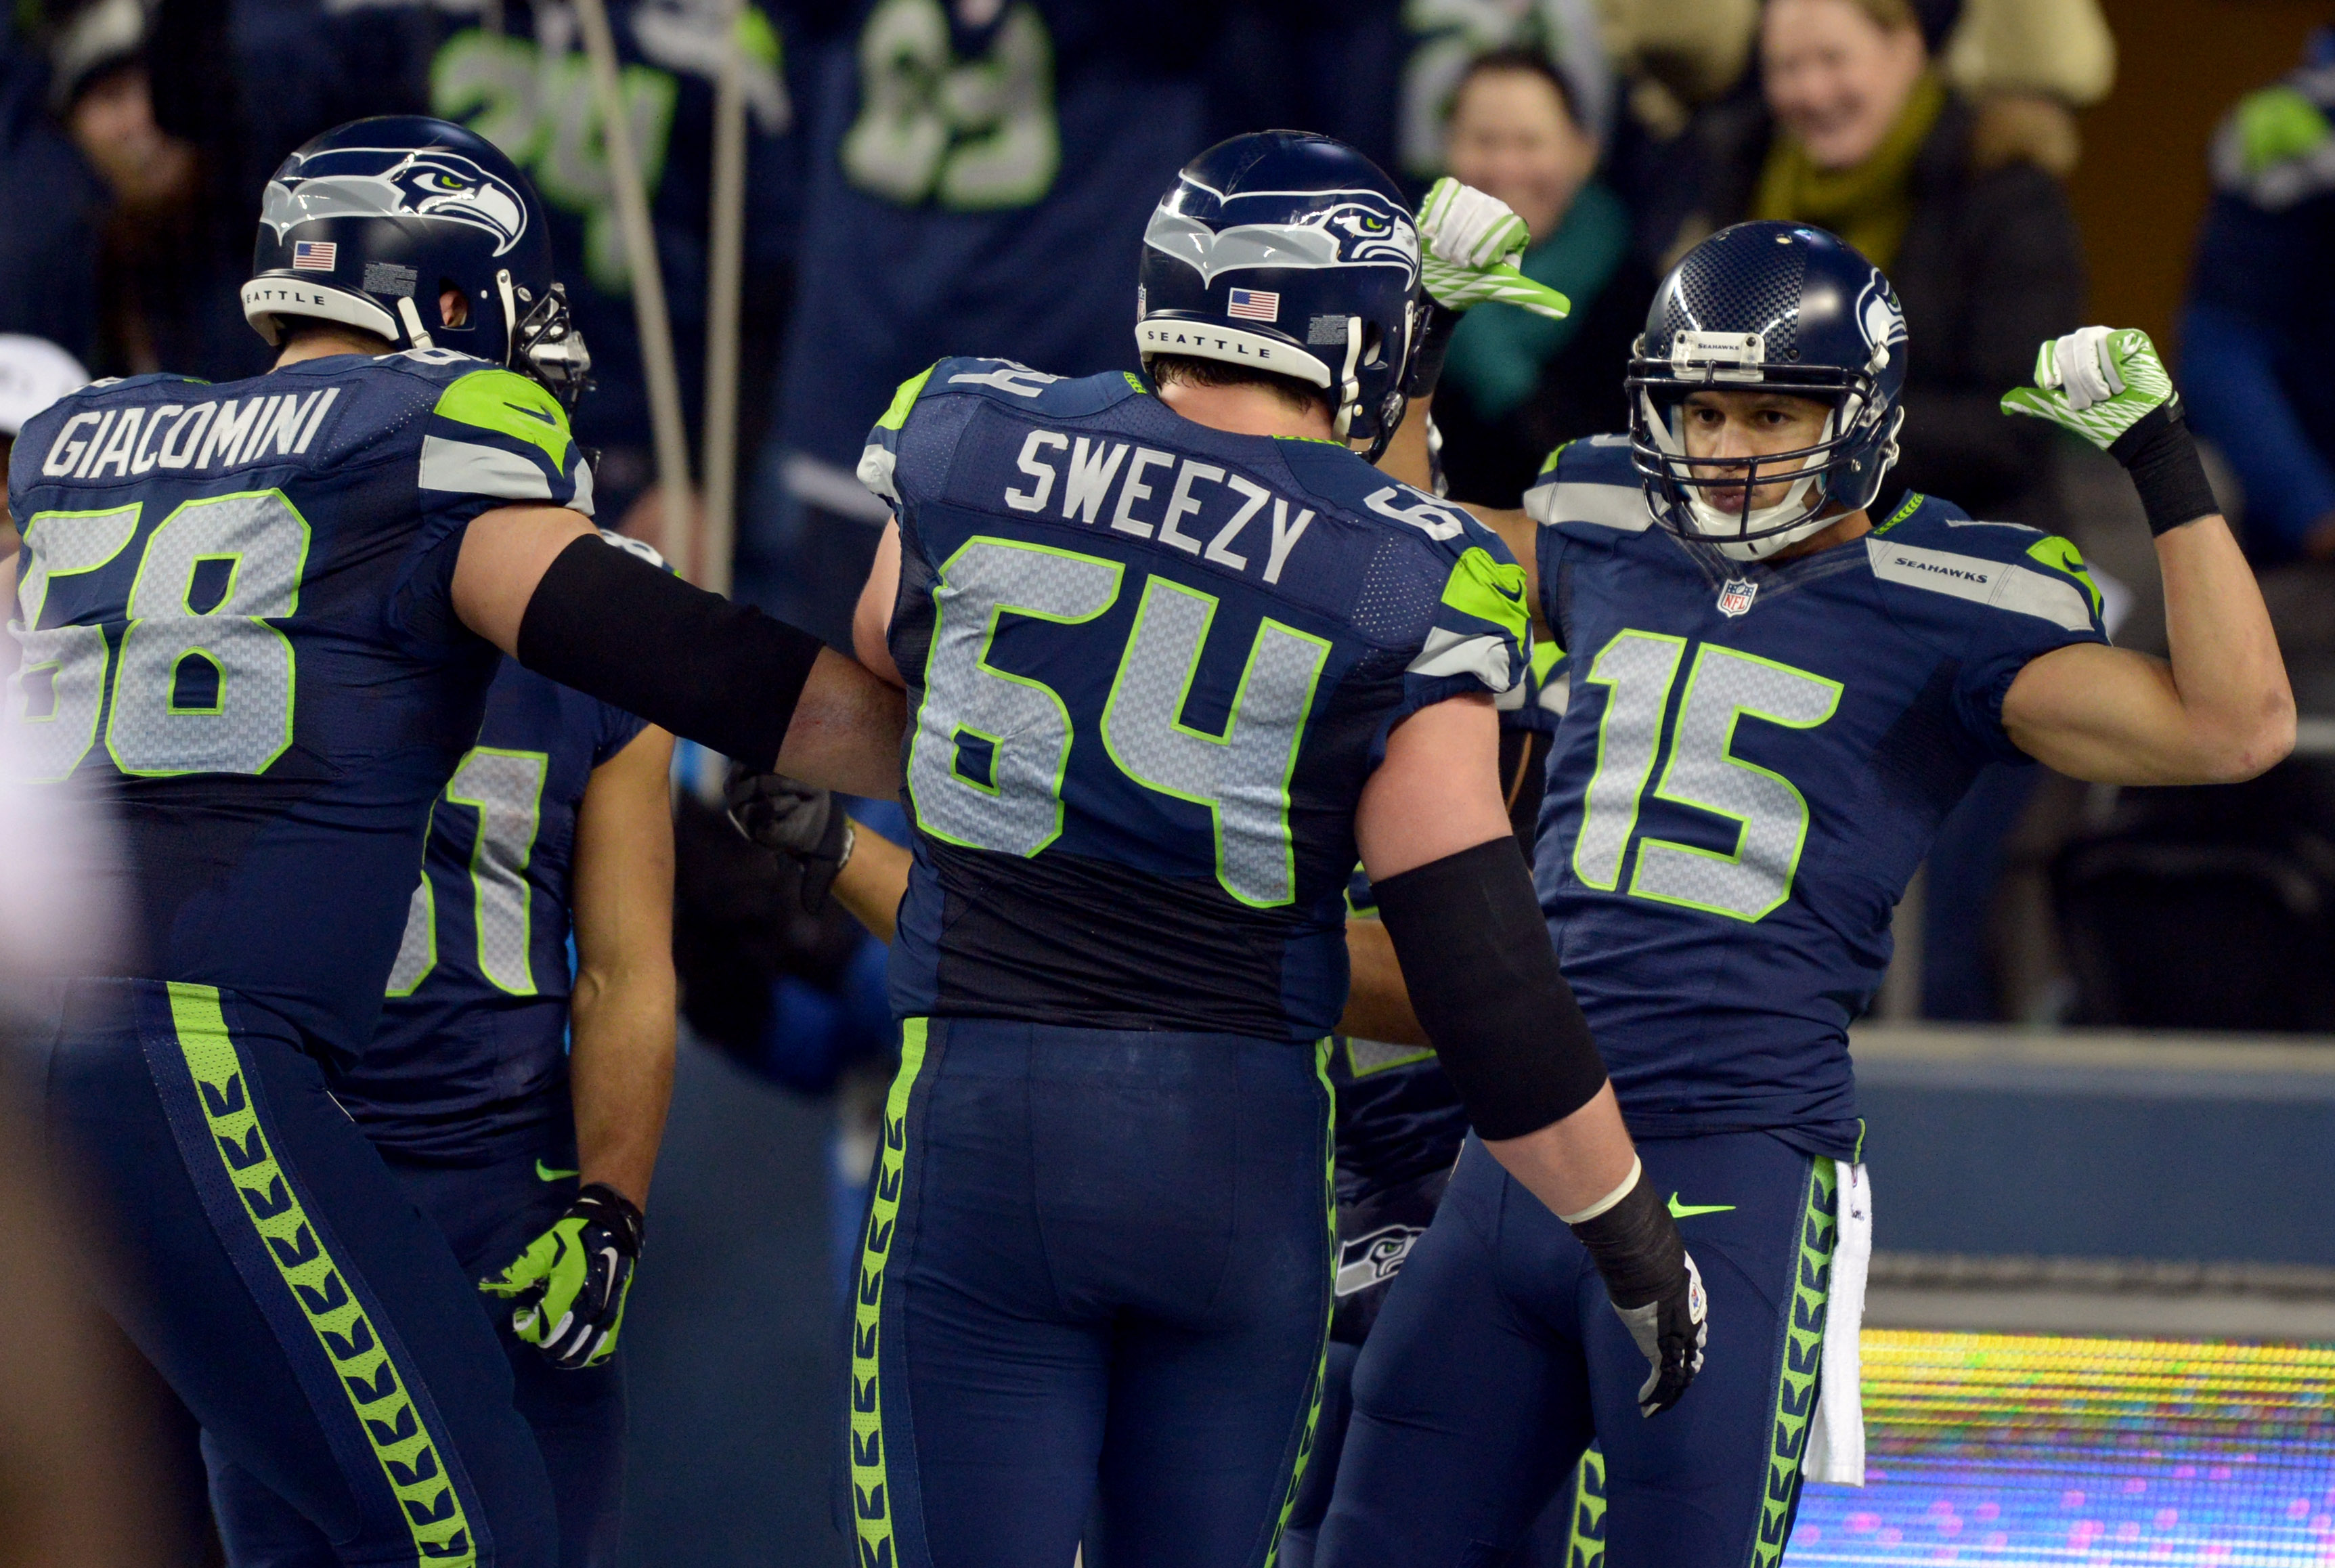 Seahawks Defense Holds On Over 49ers This Given Sunday